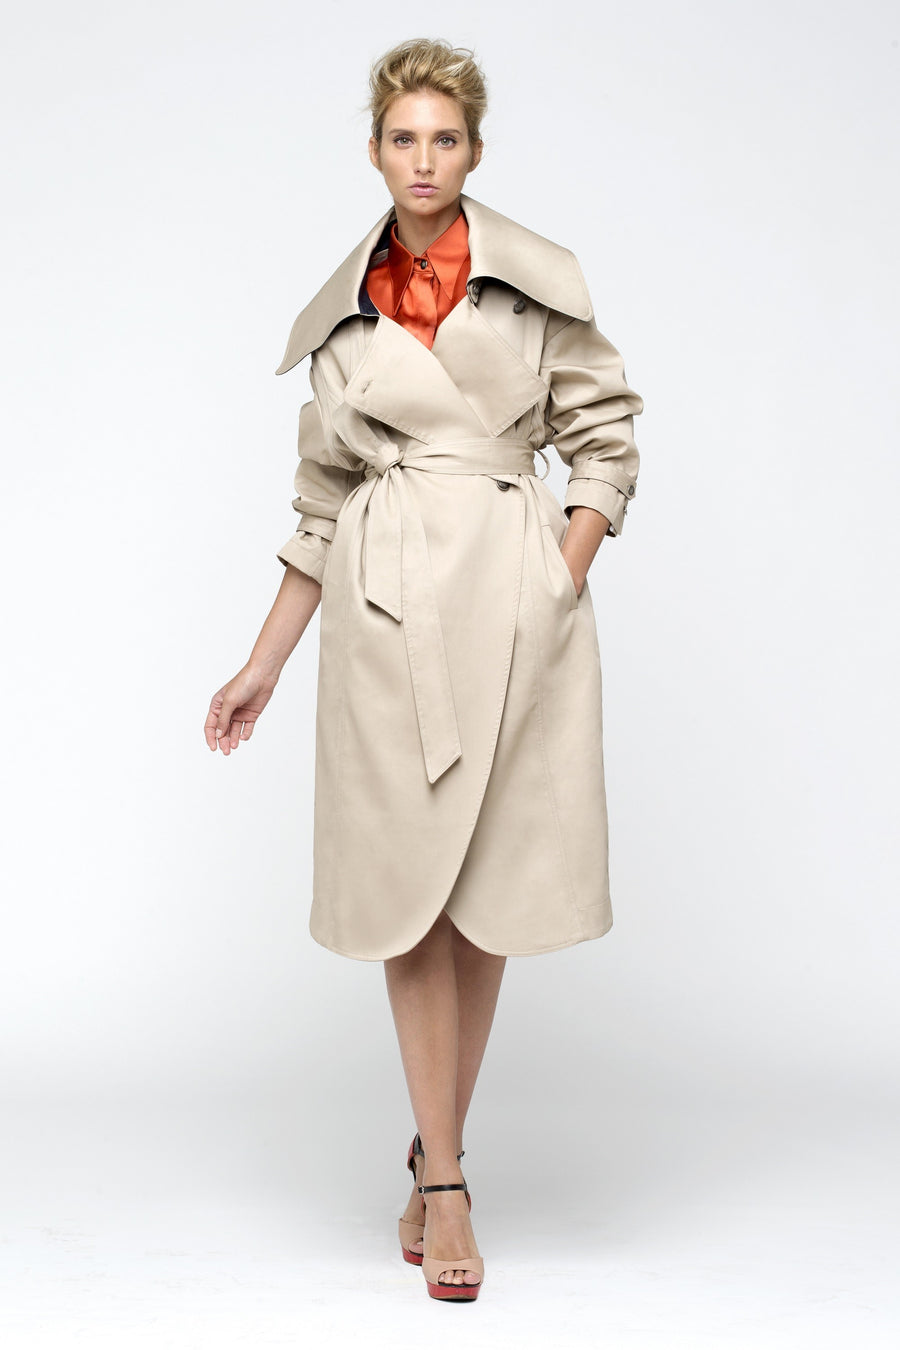 Maltese Oversize Beige Coat by Lucie Brochard